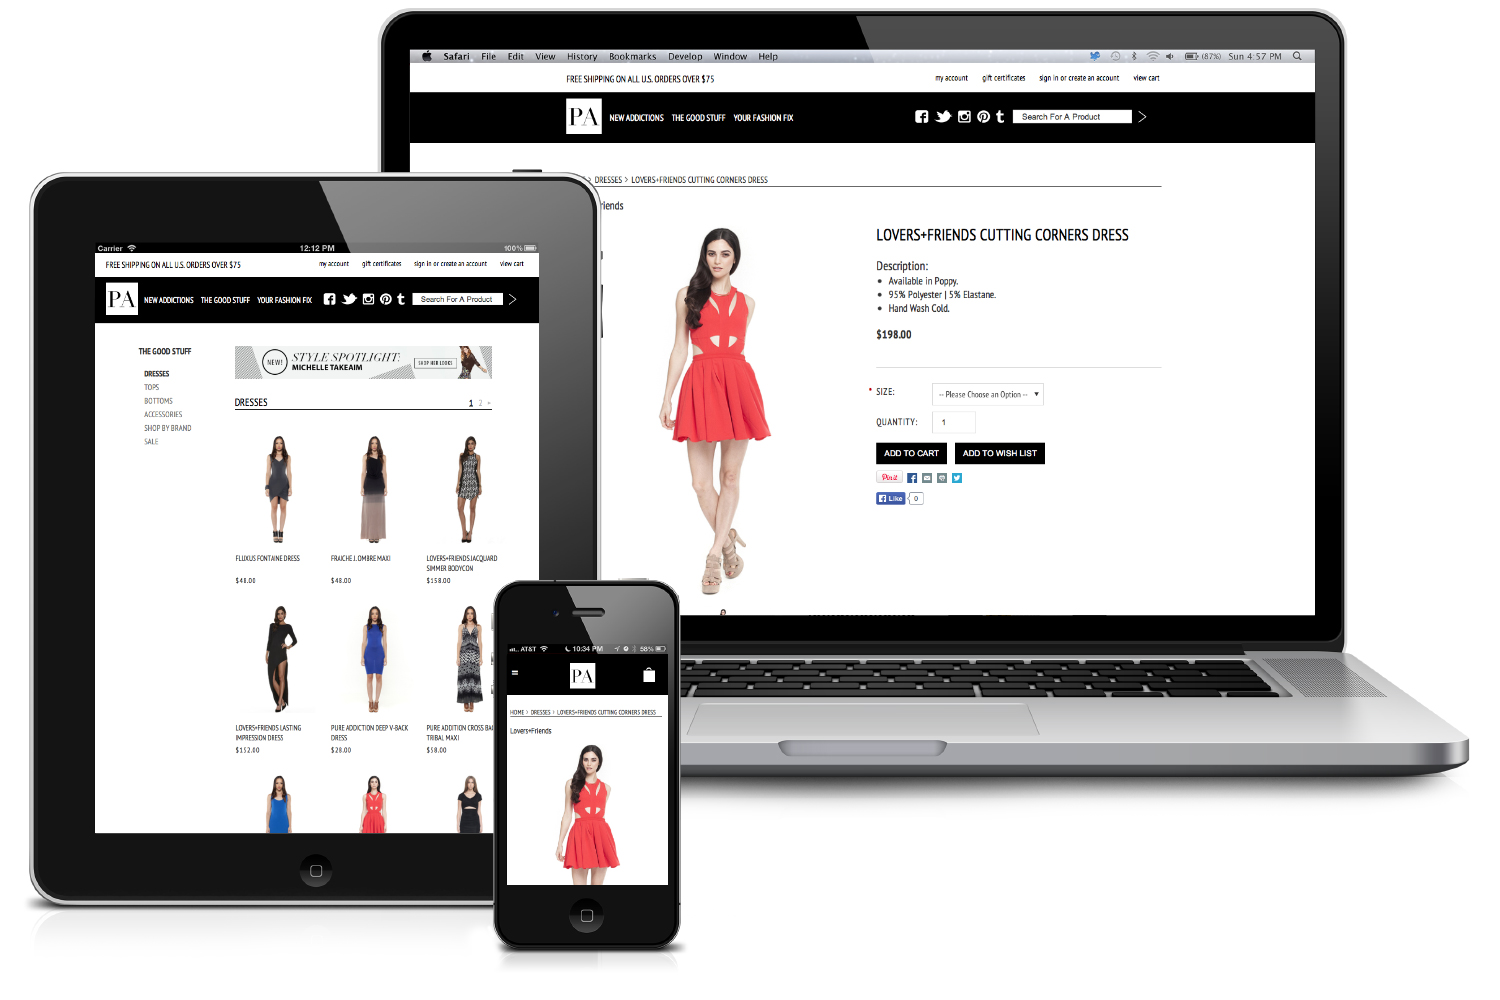 Mobile Ecommerce Design Ecommerce Mobile And Online